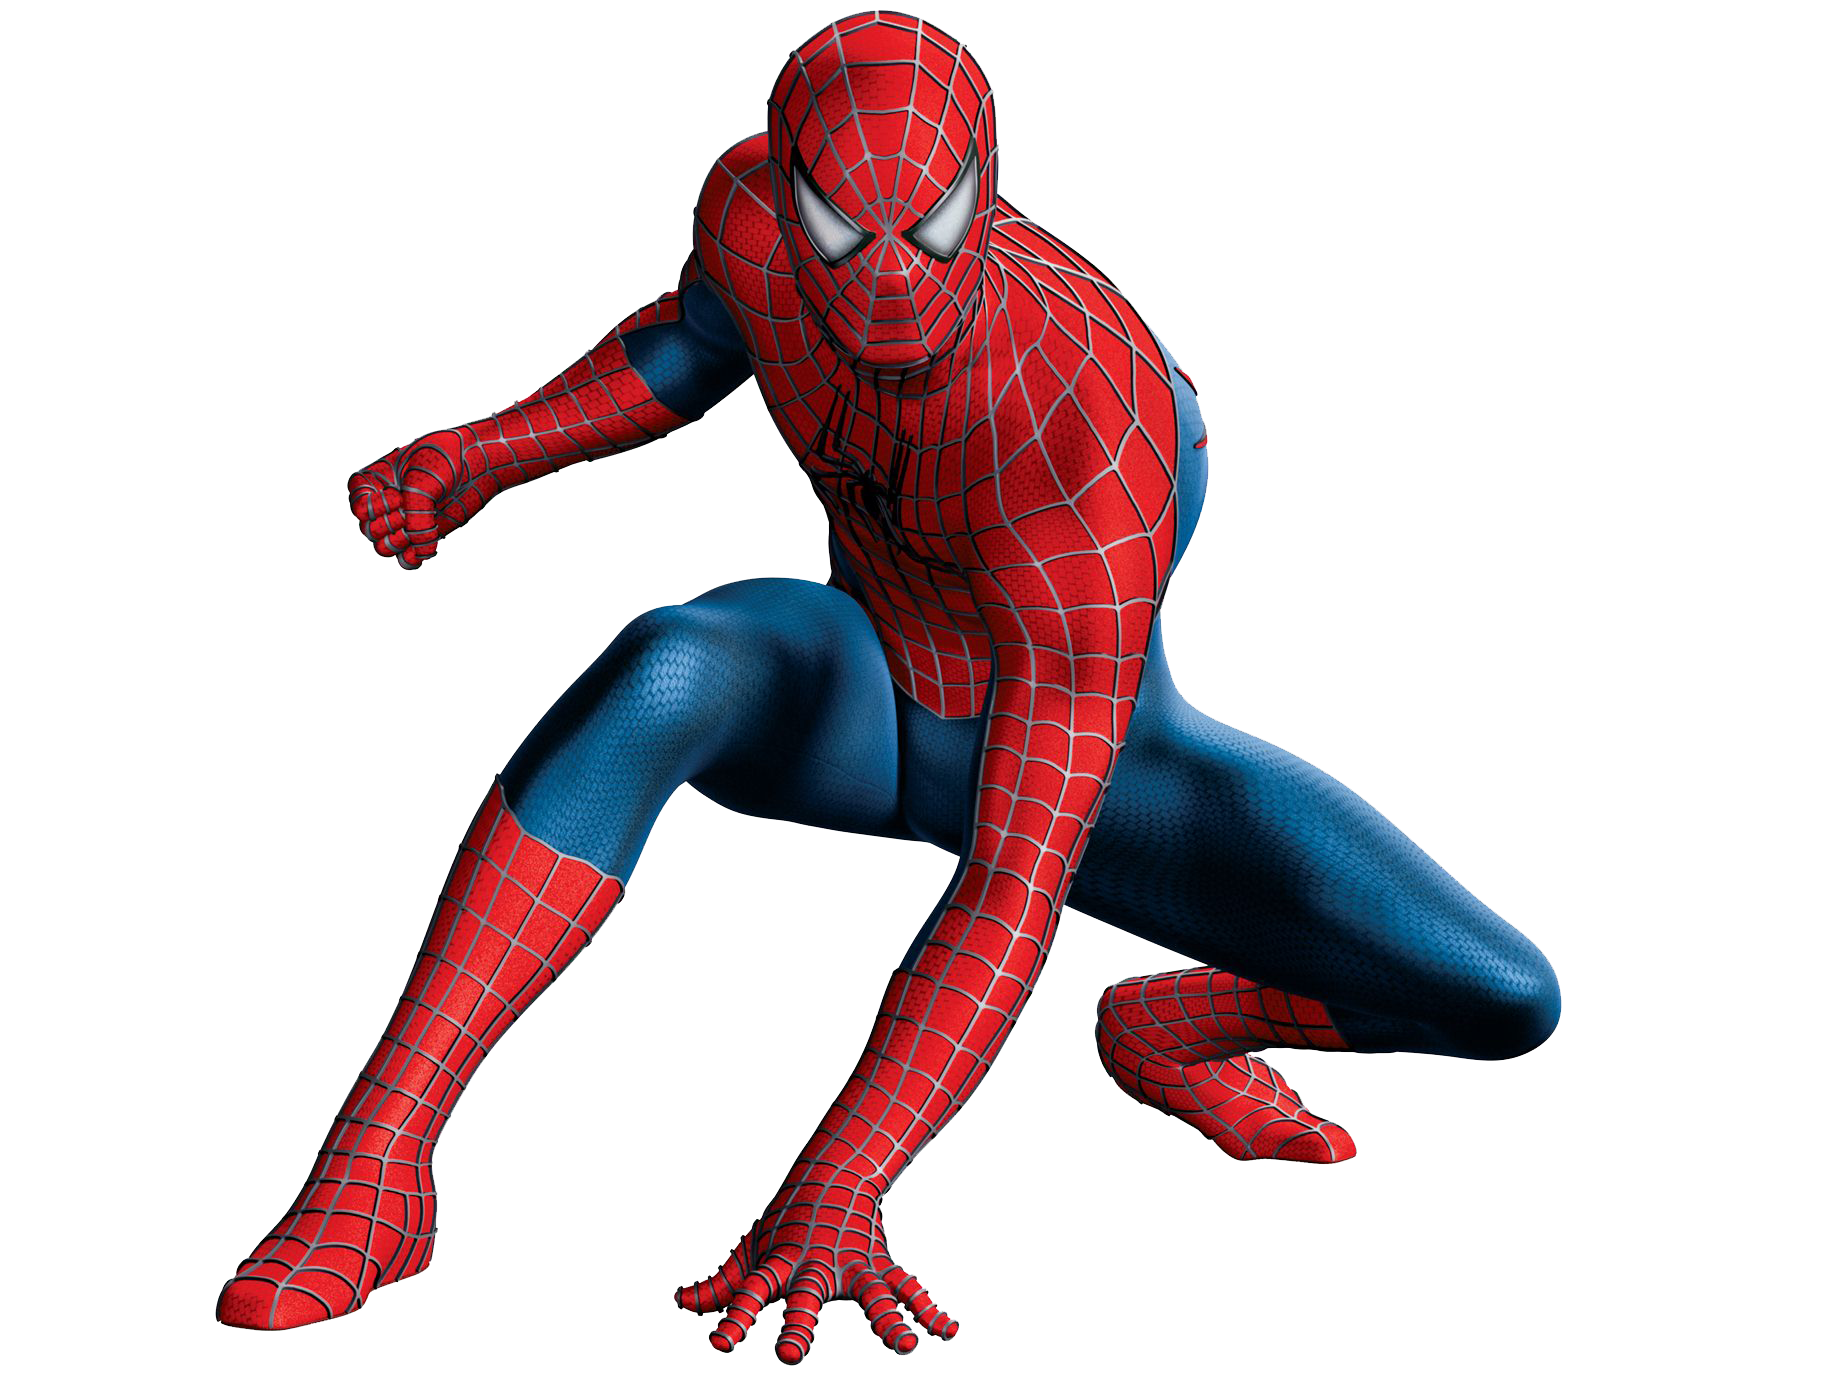 HQ Spiderman PNG Transparent SpidermanPNG Images